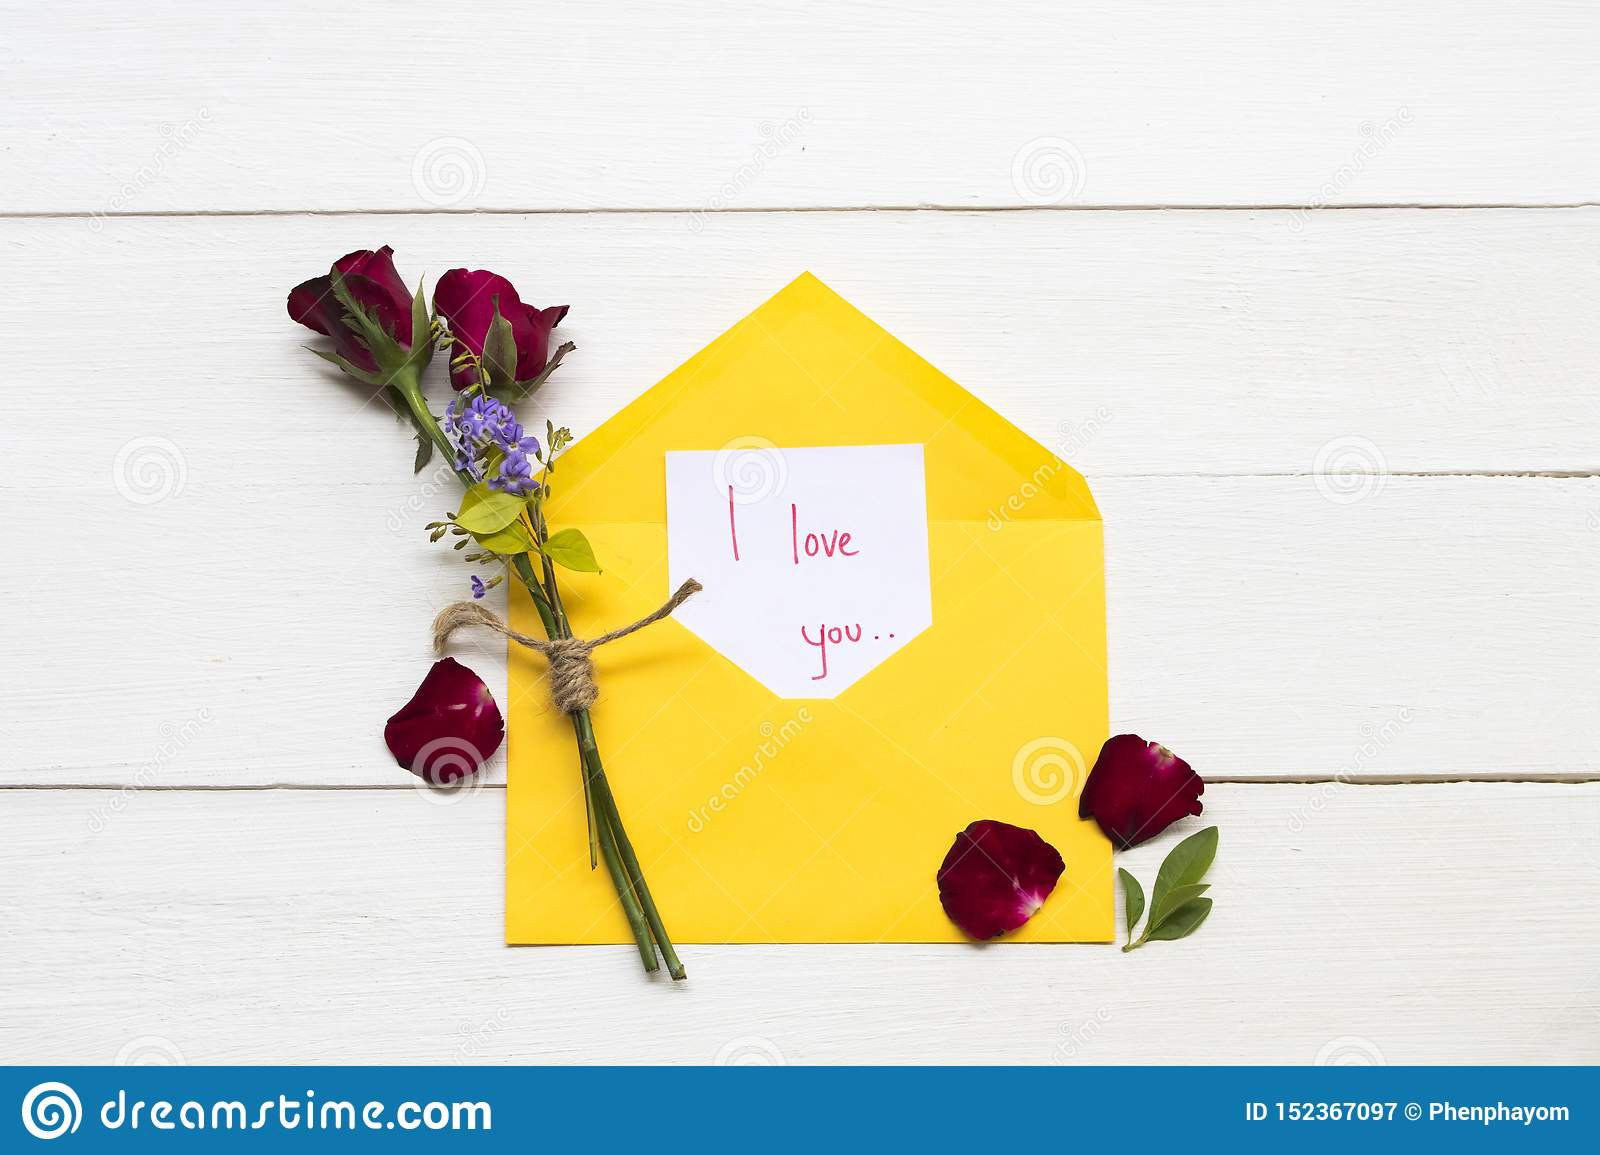 I Love You Message Card Handwriting With Red Rose Flowers